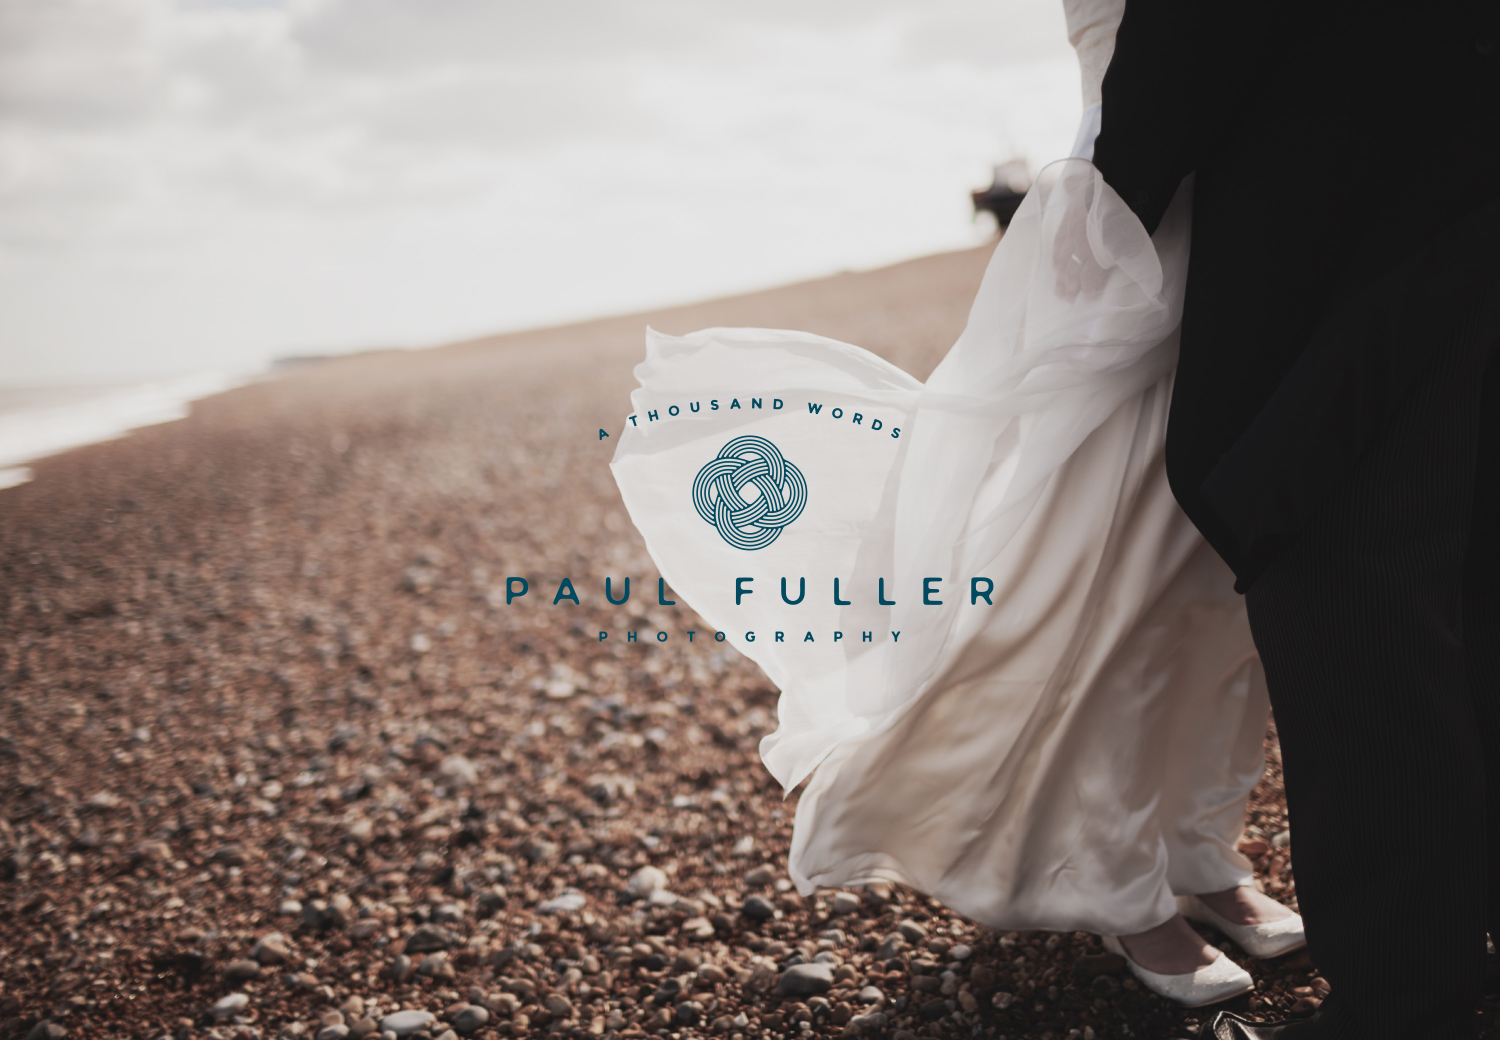 Paul Fuller Kent Wedding photographer logo design and brand identity by Ditto Creative, boutique branding agency in Kent